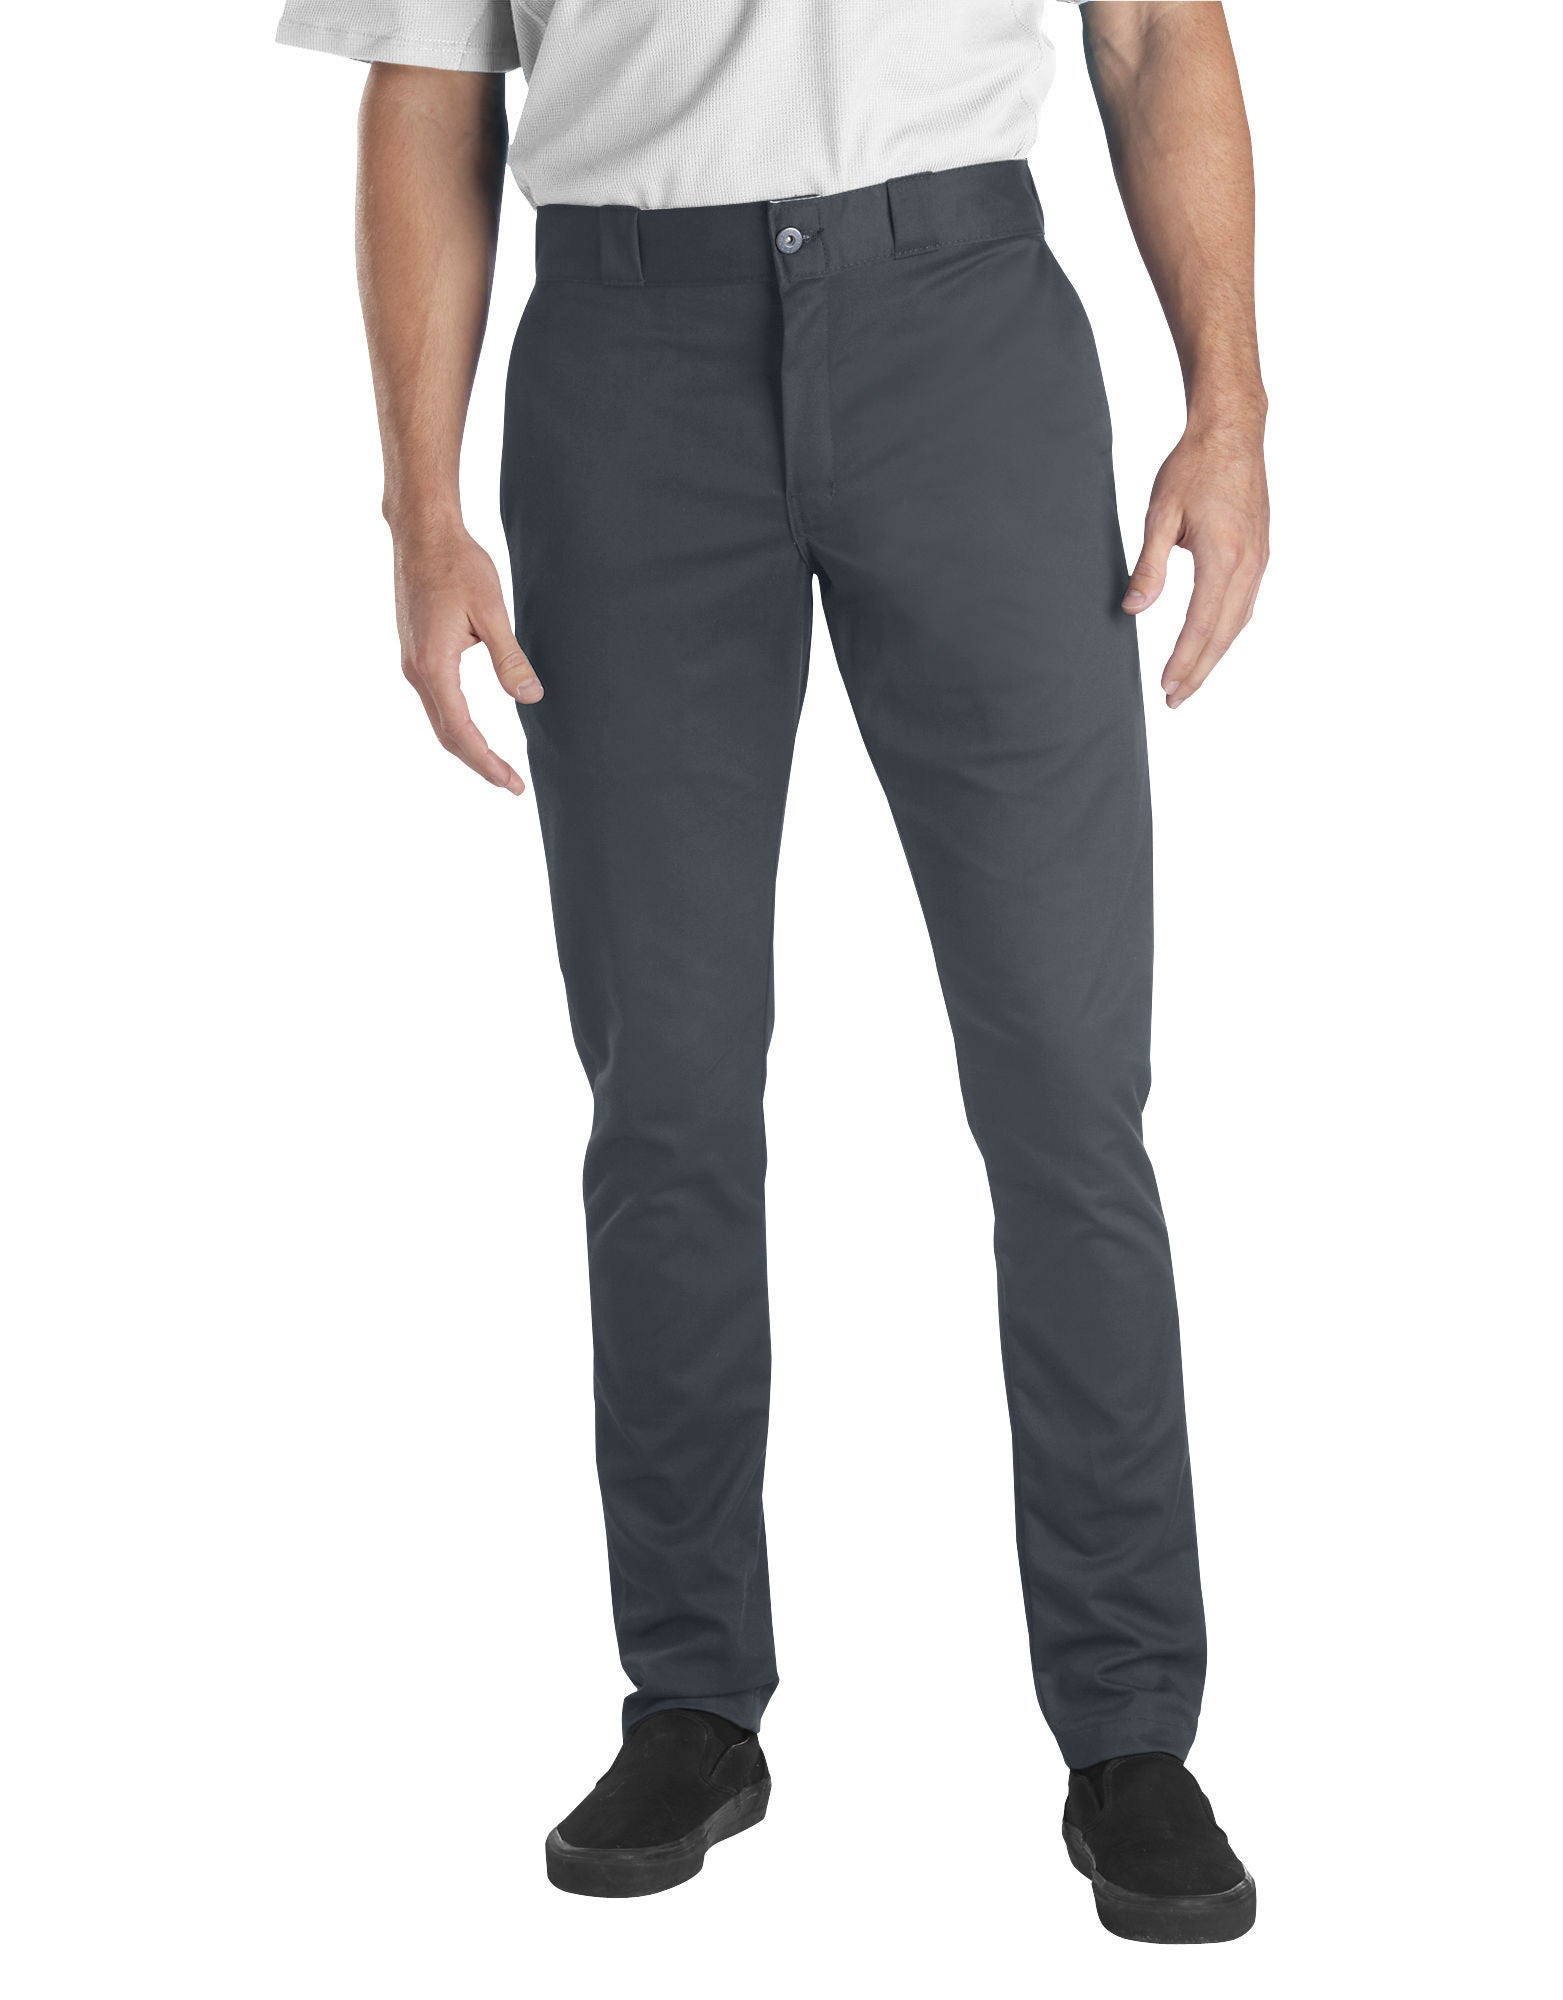 030a6de7c1 Dickies Flex Skinny Straight Fit Work Pant #WP801 – ValueMaxx